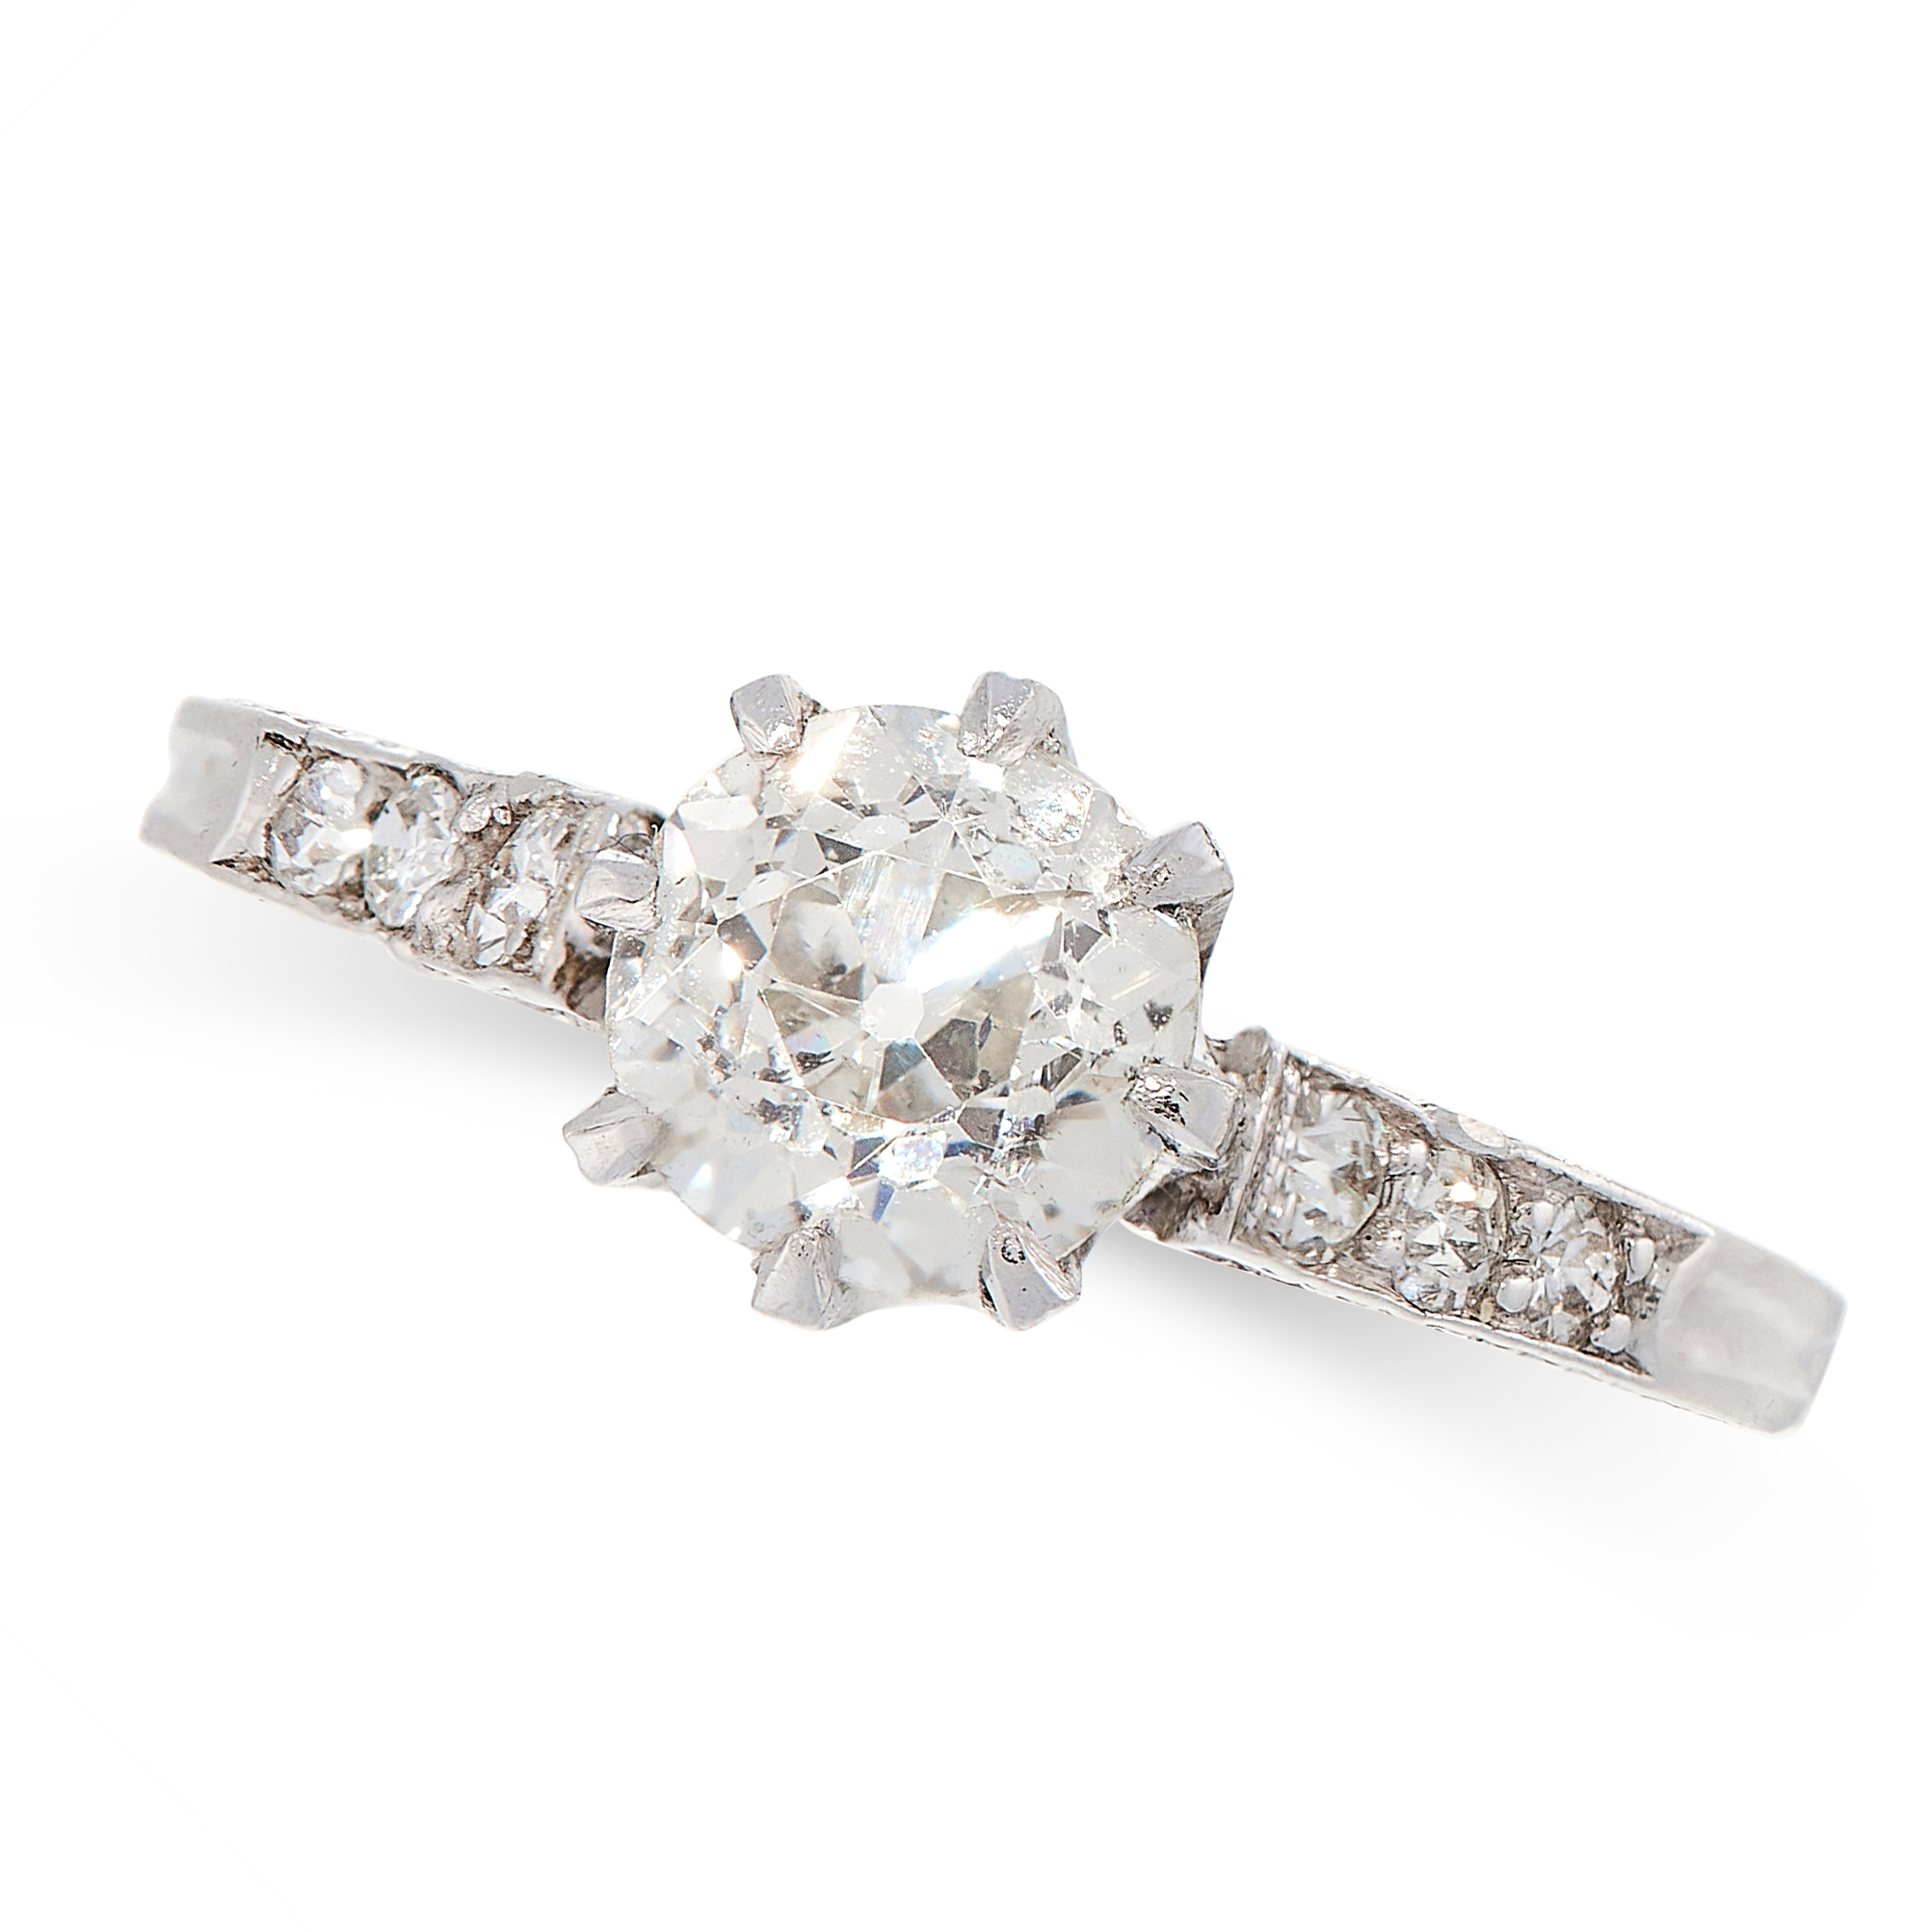 SOLITAIRE DIAMOND RING comprising of an old cut diamond of 1.00 carats, with further single cut